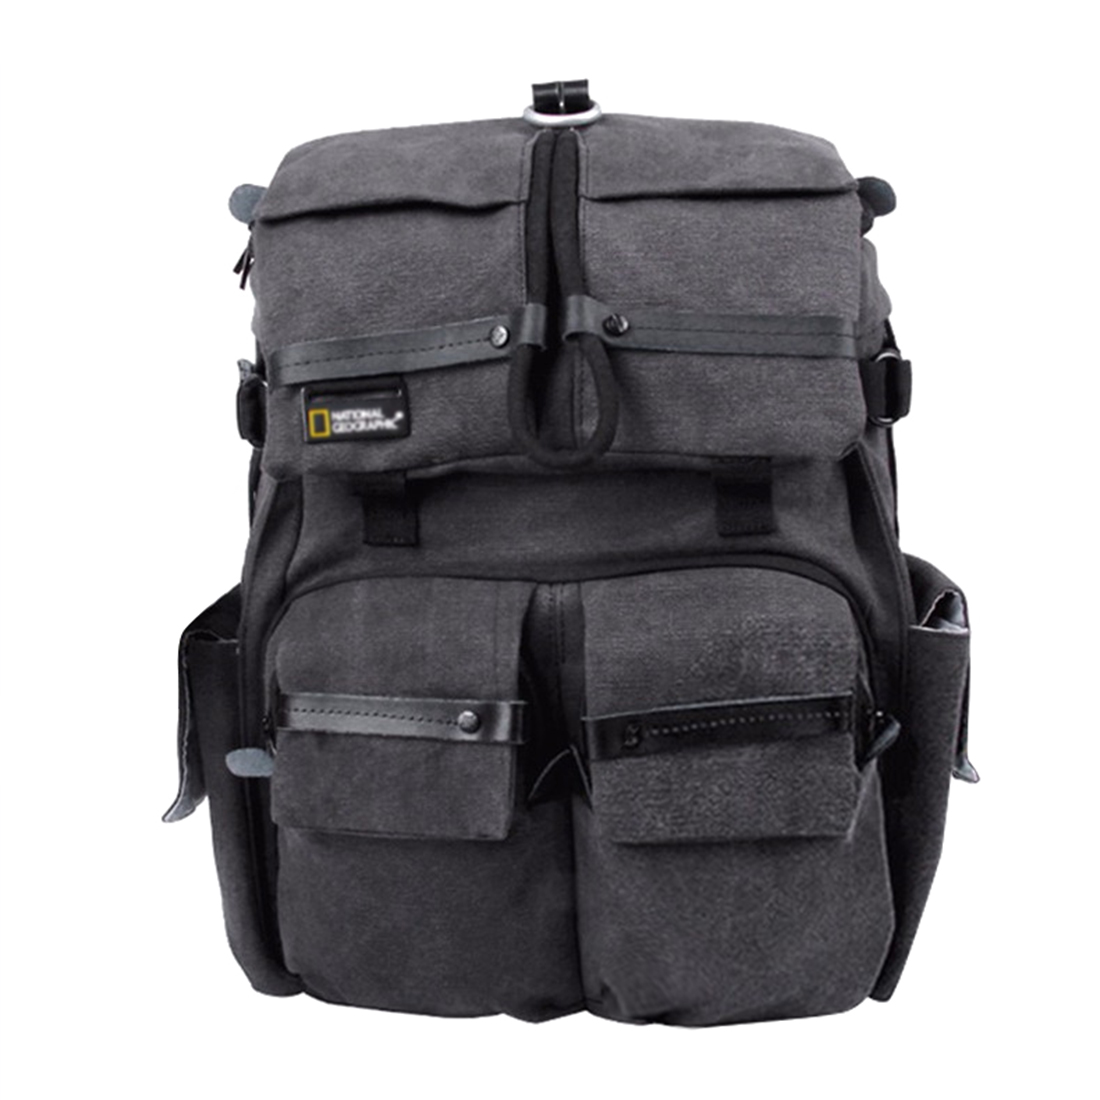 High Quality Camera Bag NATIONAL GEOGRAPHIC NG W5070 Camera Backpack Genuine Outdoor Travel Camera Bag (Extra thick version) high performance uav aircraft quadcopter rc app fpv selfie live altitude hold